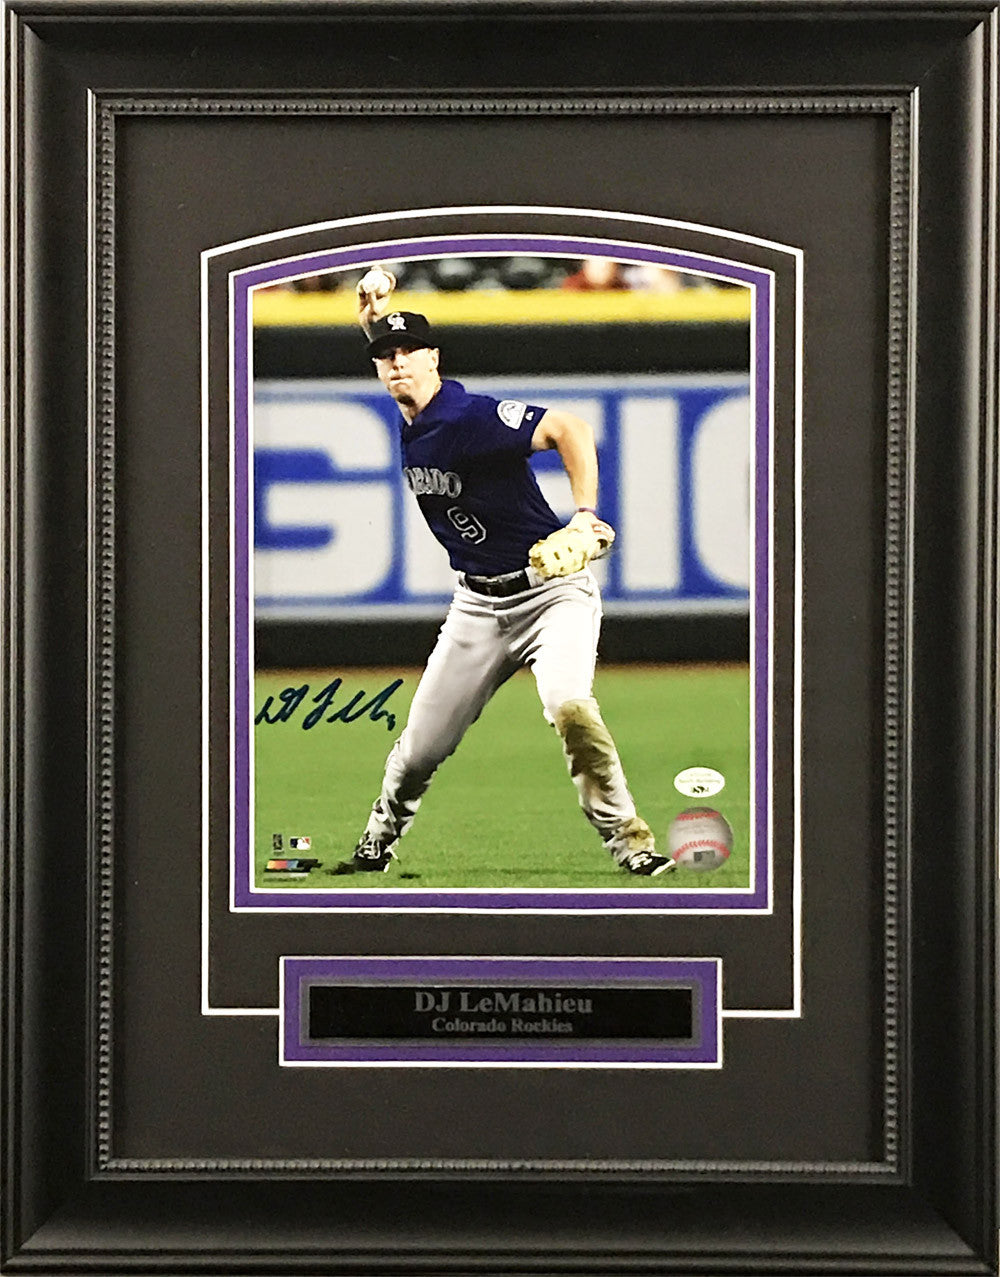 Deluxe Framed D.J. LeMahieu 8x10 Signed Photo (Fielding)